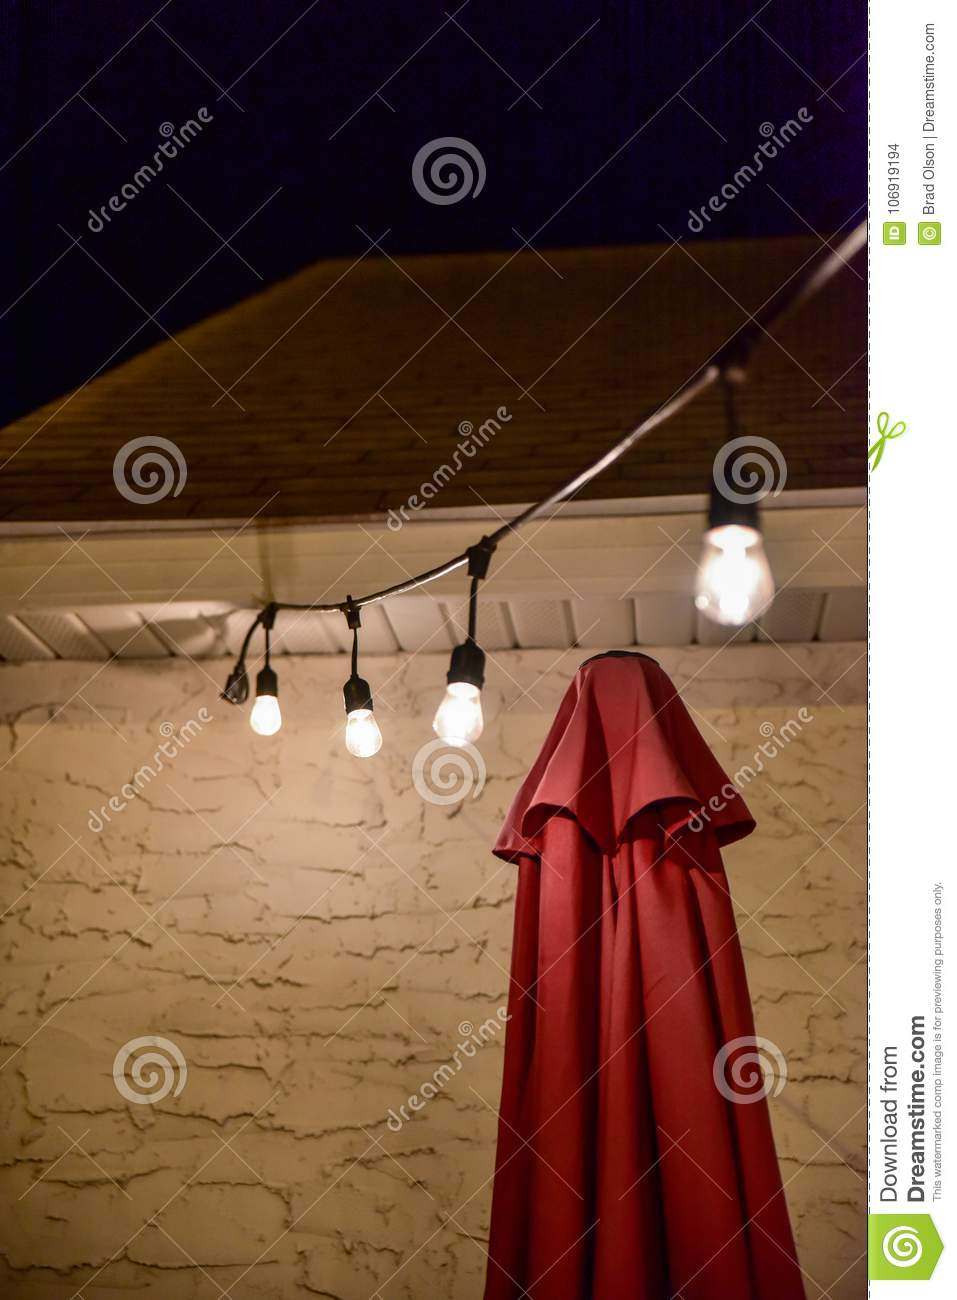 Hanging Outdoor Lights Over Patio In Summer Night Stock Photo Image Of Graphic Bradleyolson 106919194